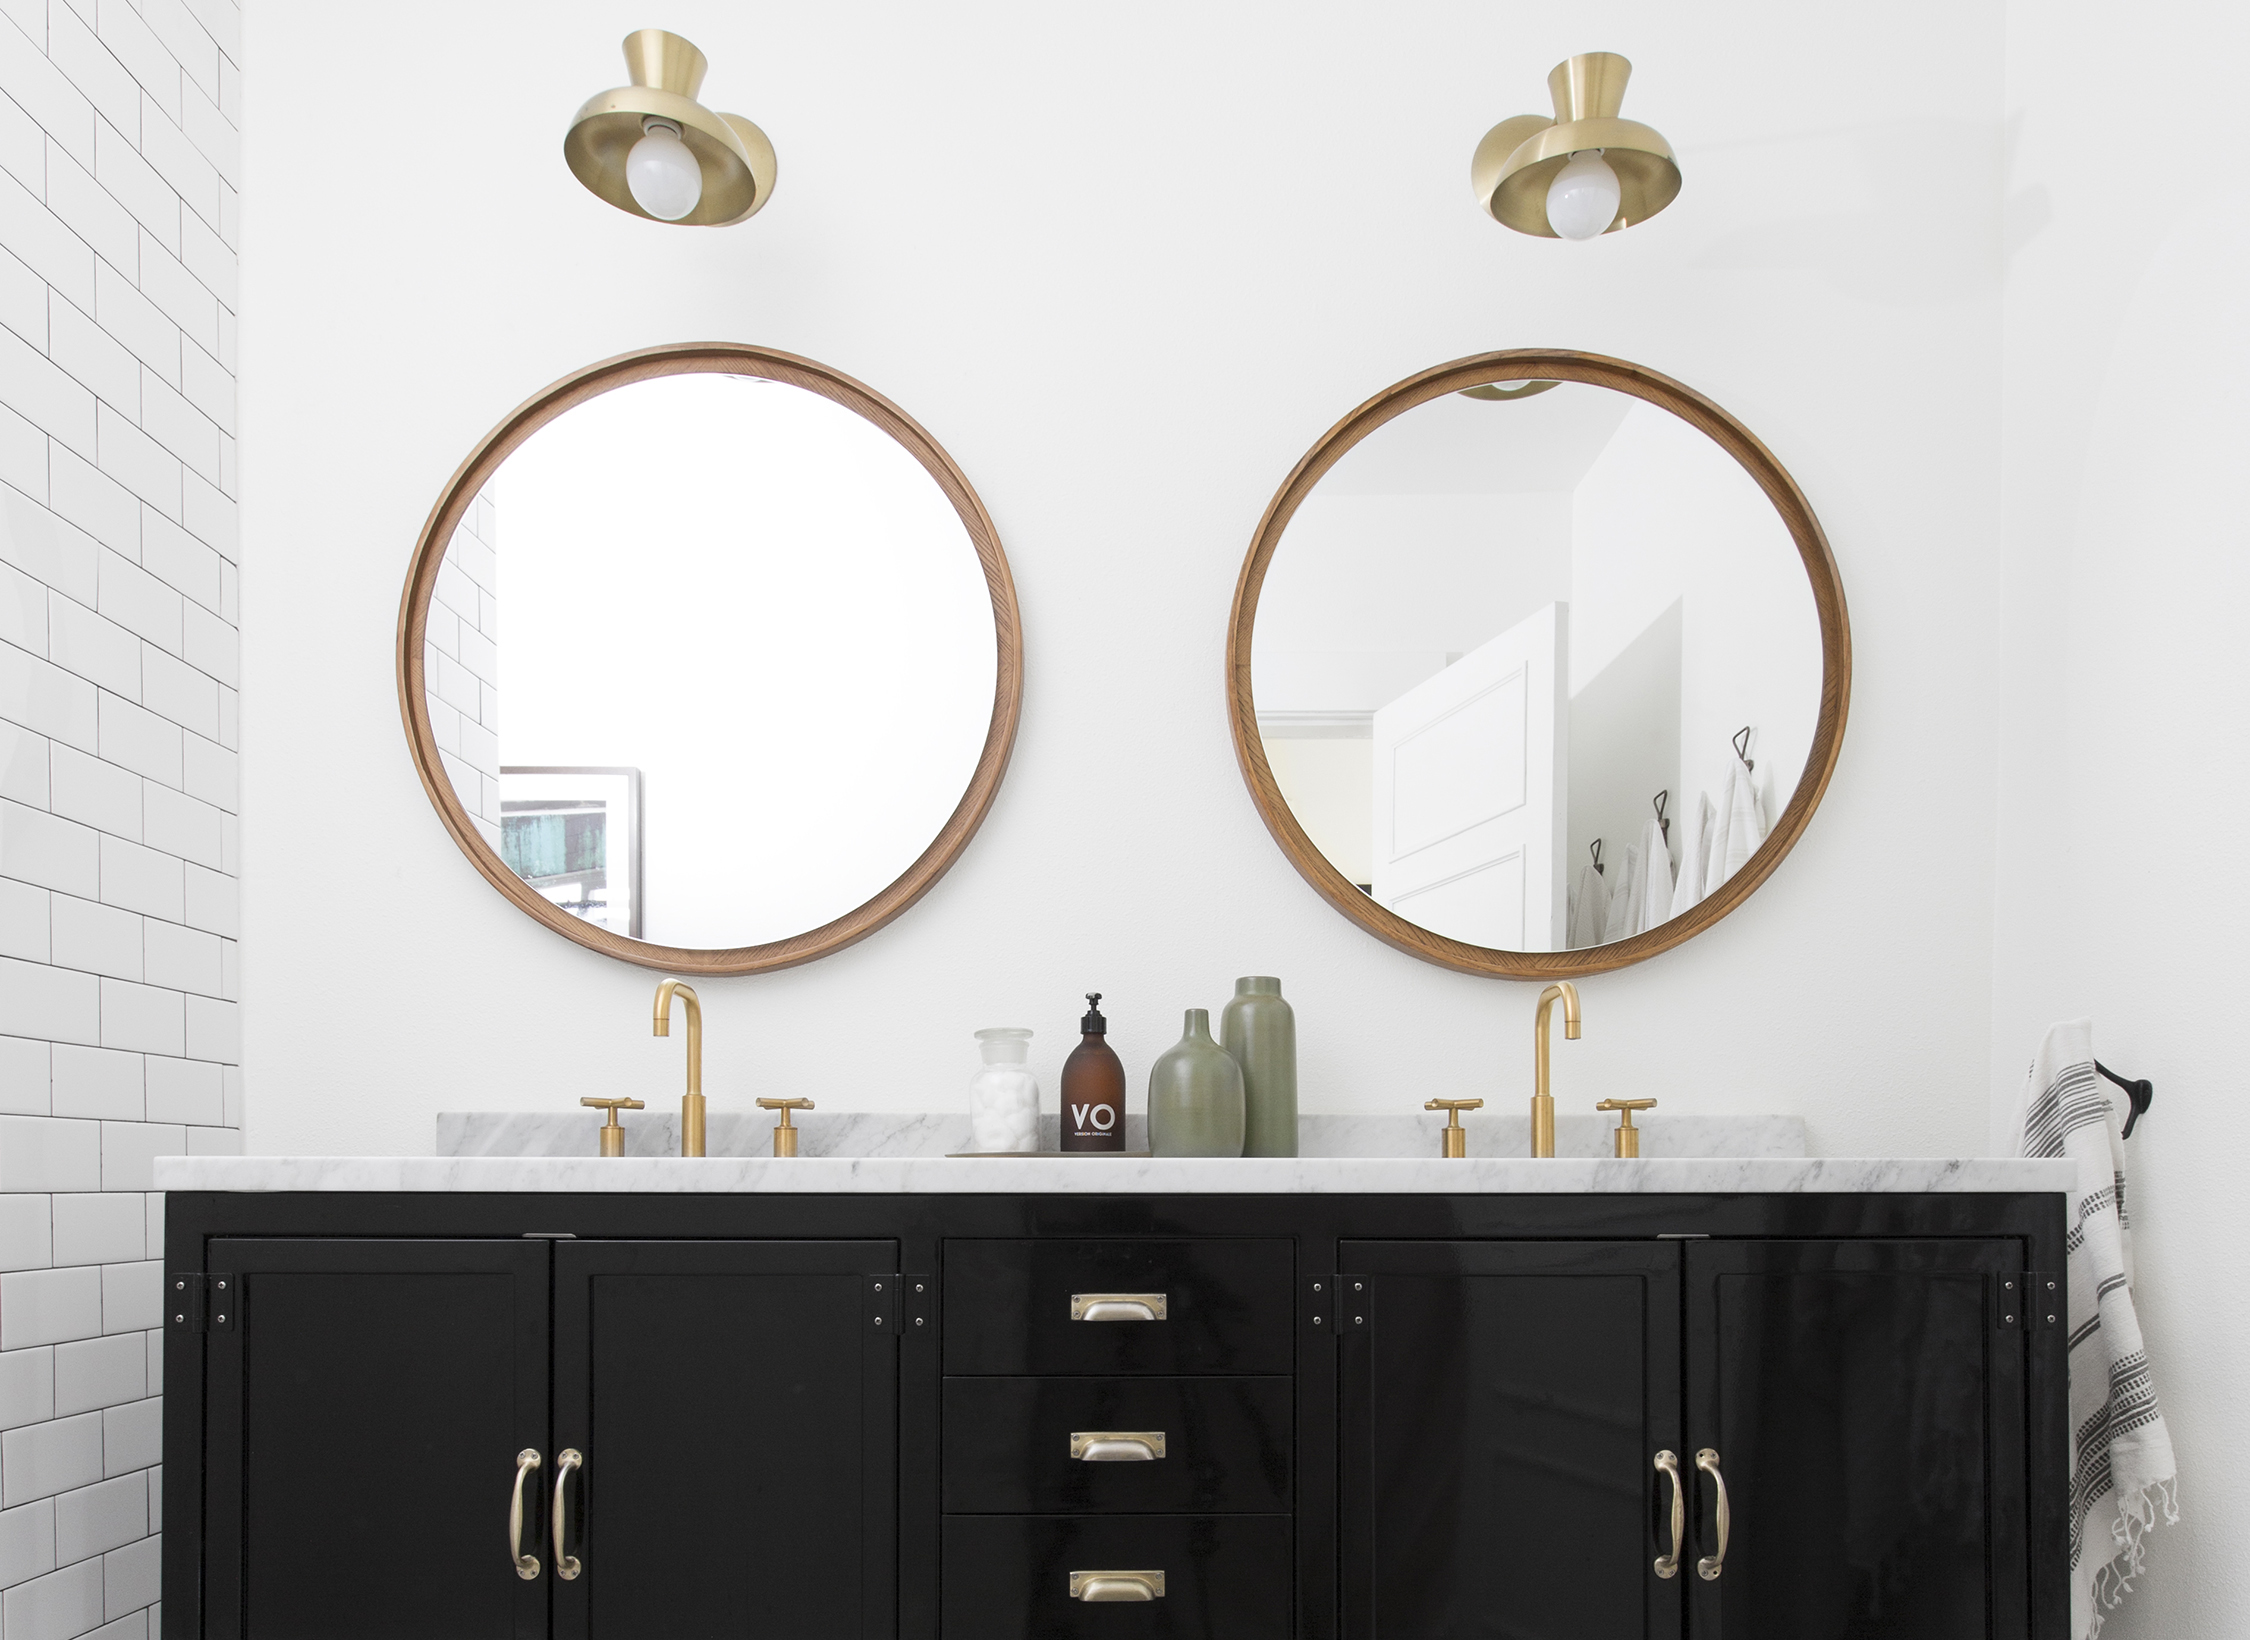 Double vanity with two round mirrors above the sinks.